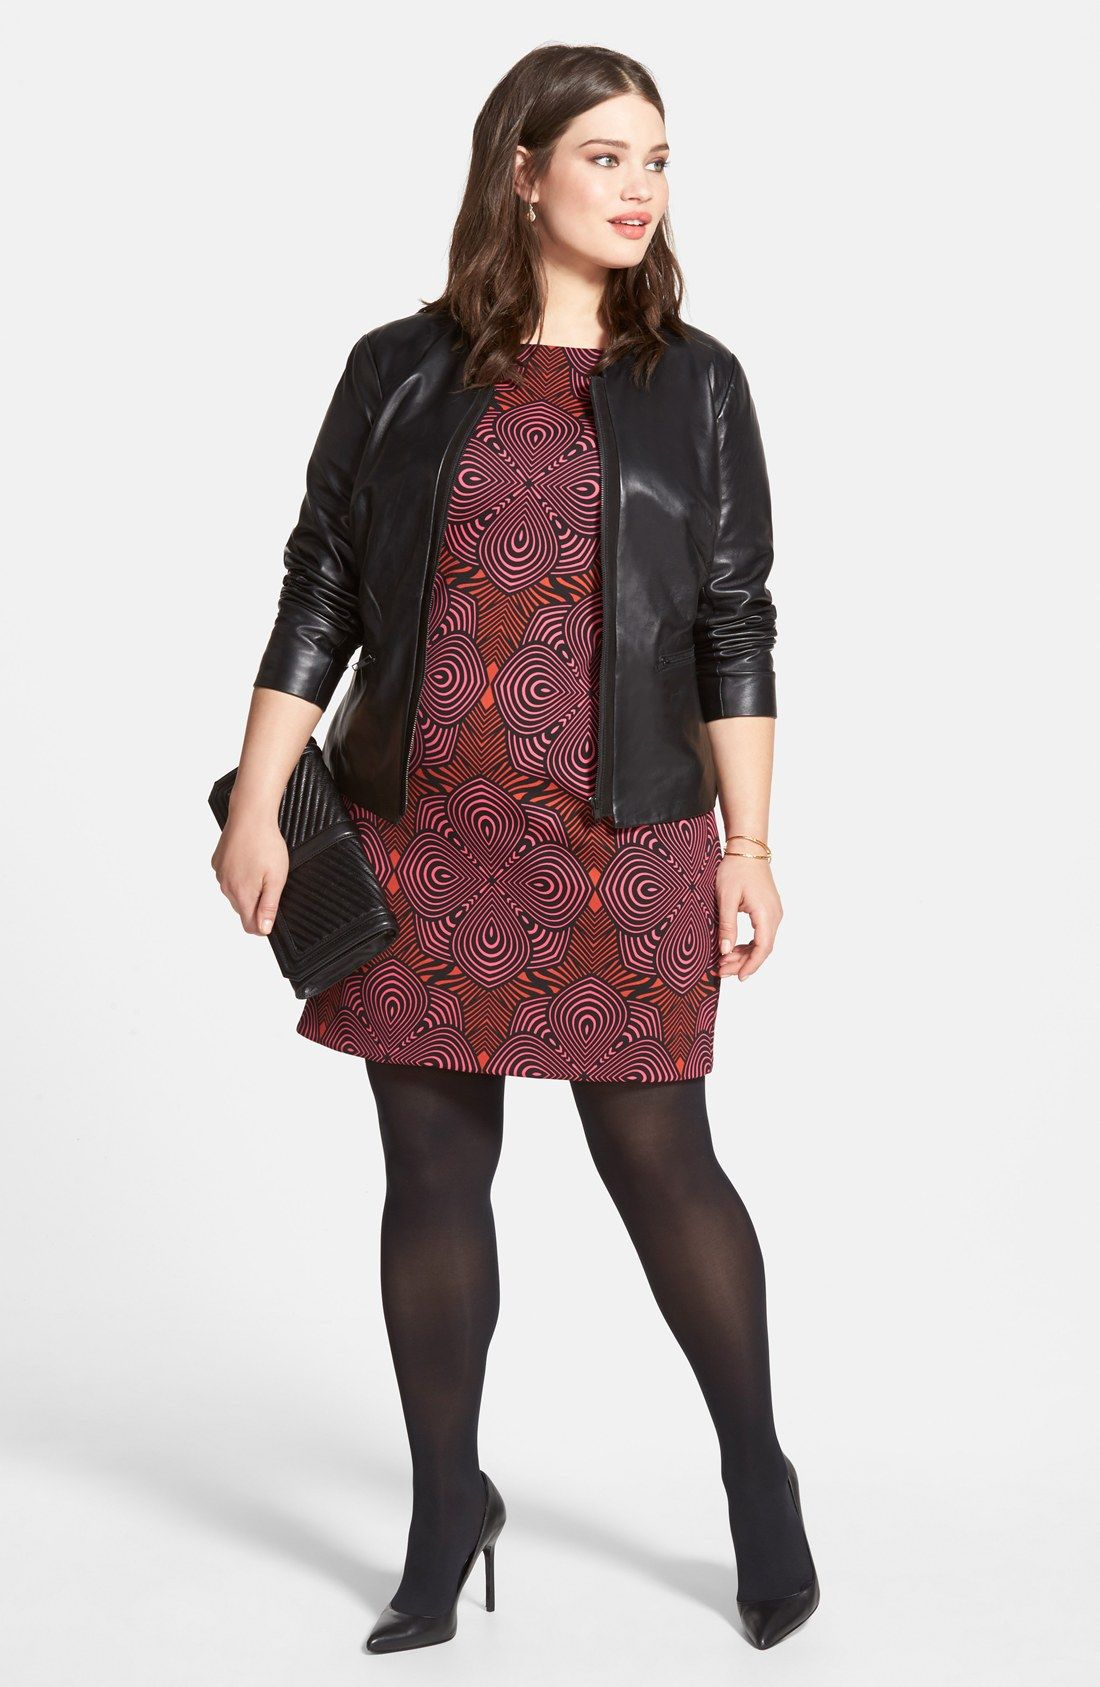 Plus size black jacket dresses